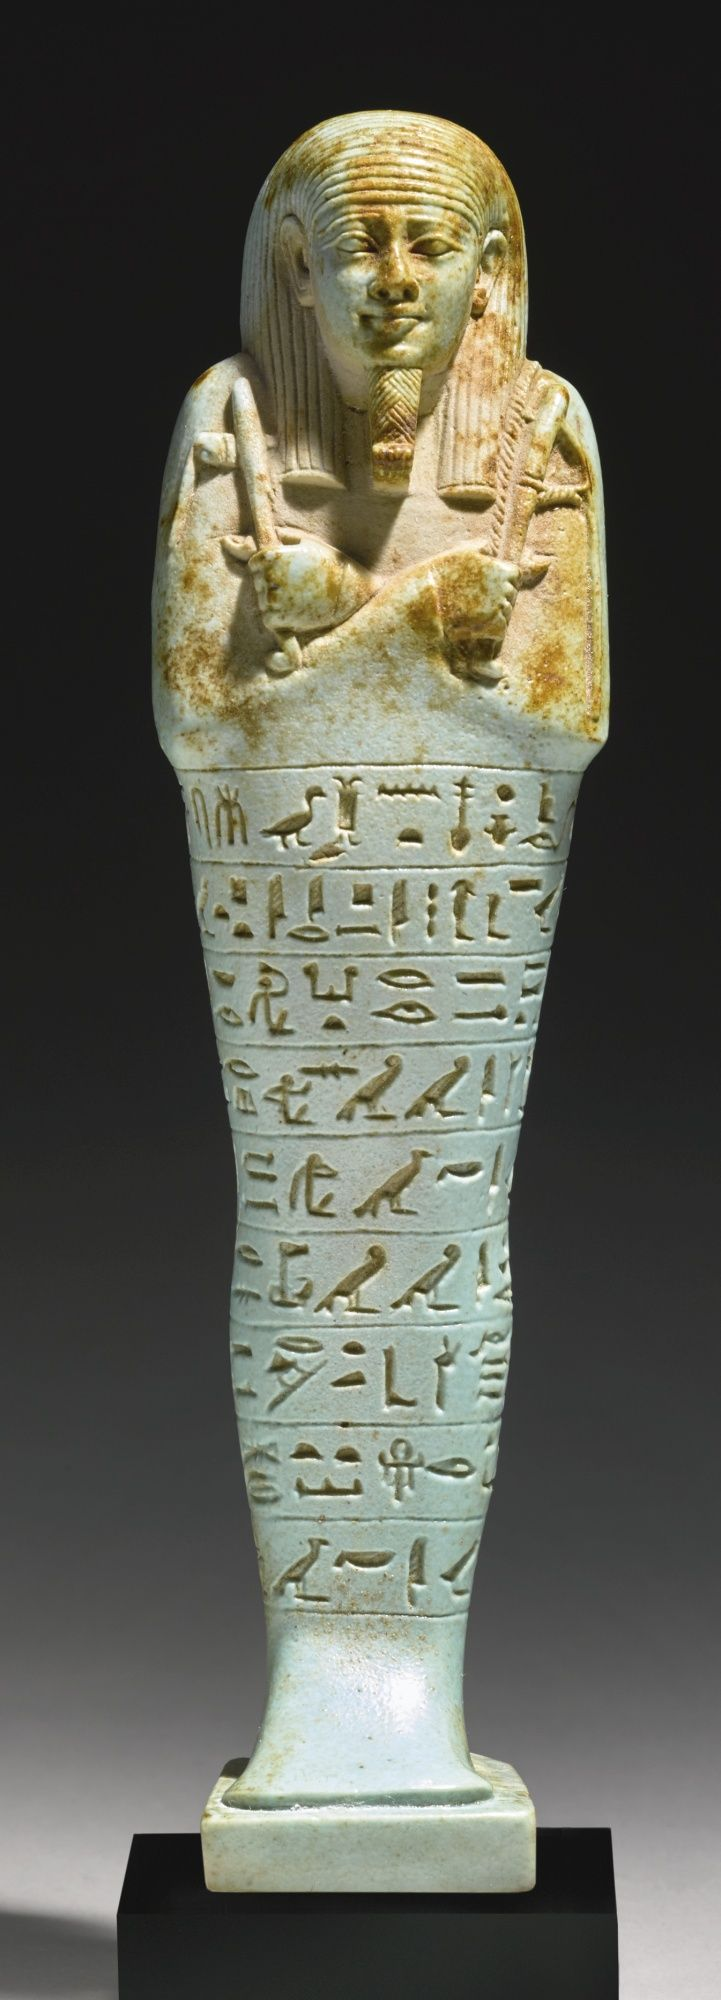 An Egyptian Pale Blue Faience Ushabti of Neferibresaneith, 26th Dynasty, reign of Amasis, 570-526 B.C. | lot | Sotheby's